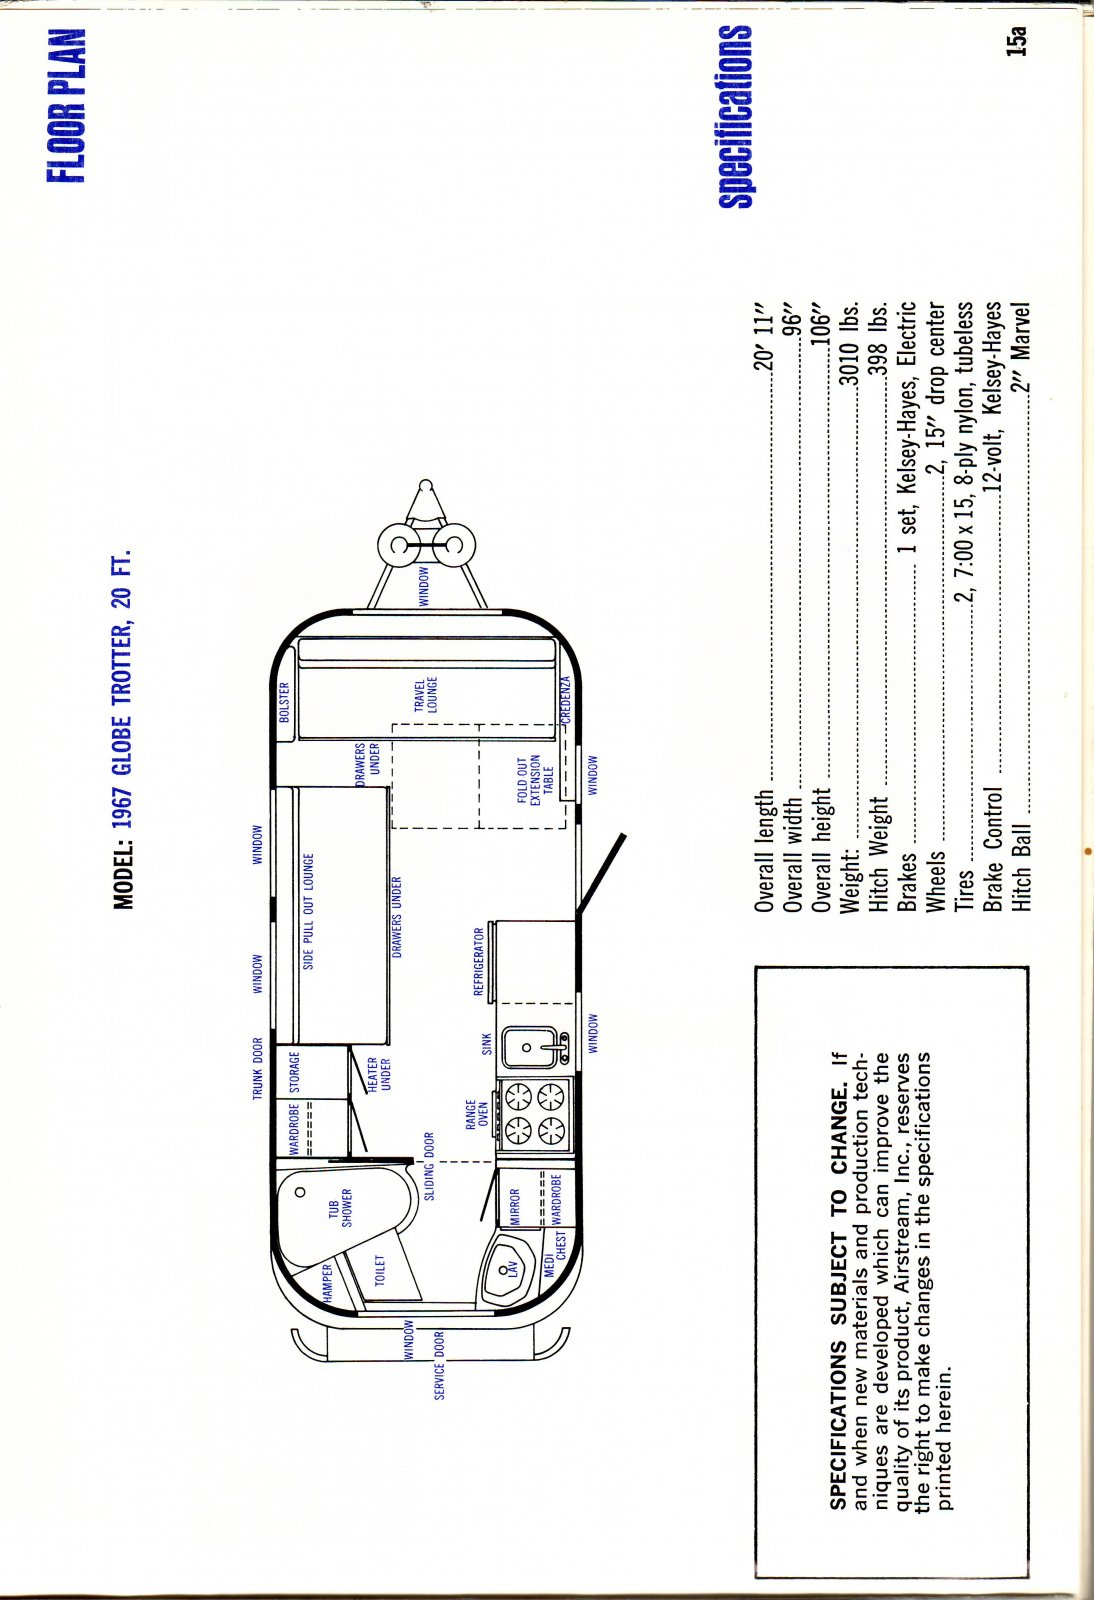 Click image for larger version  Name:Airstream manual 15bb.jpg Views:120 Size:202.1 KB ID:77477